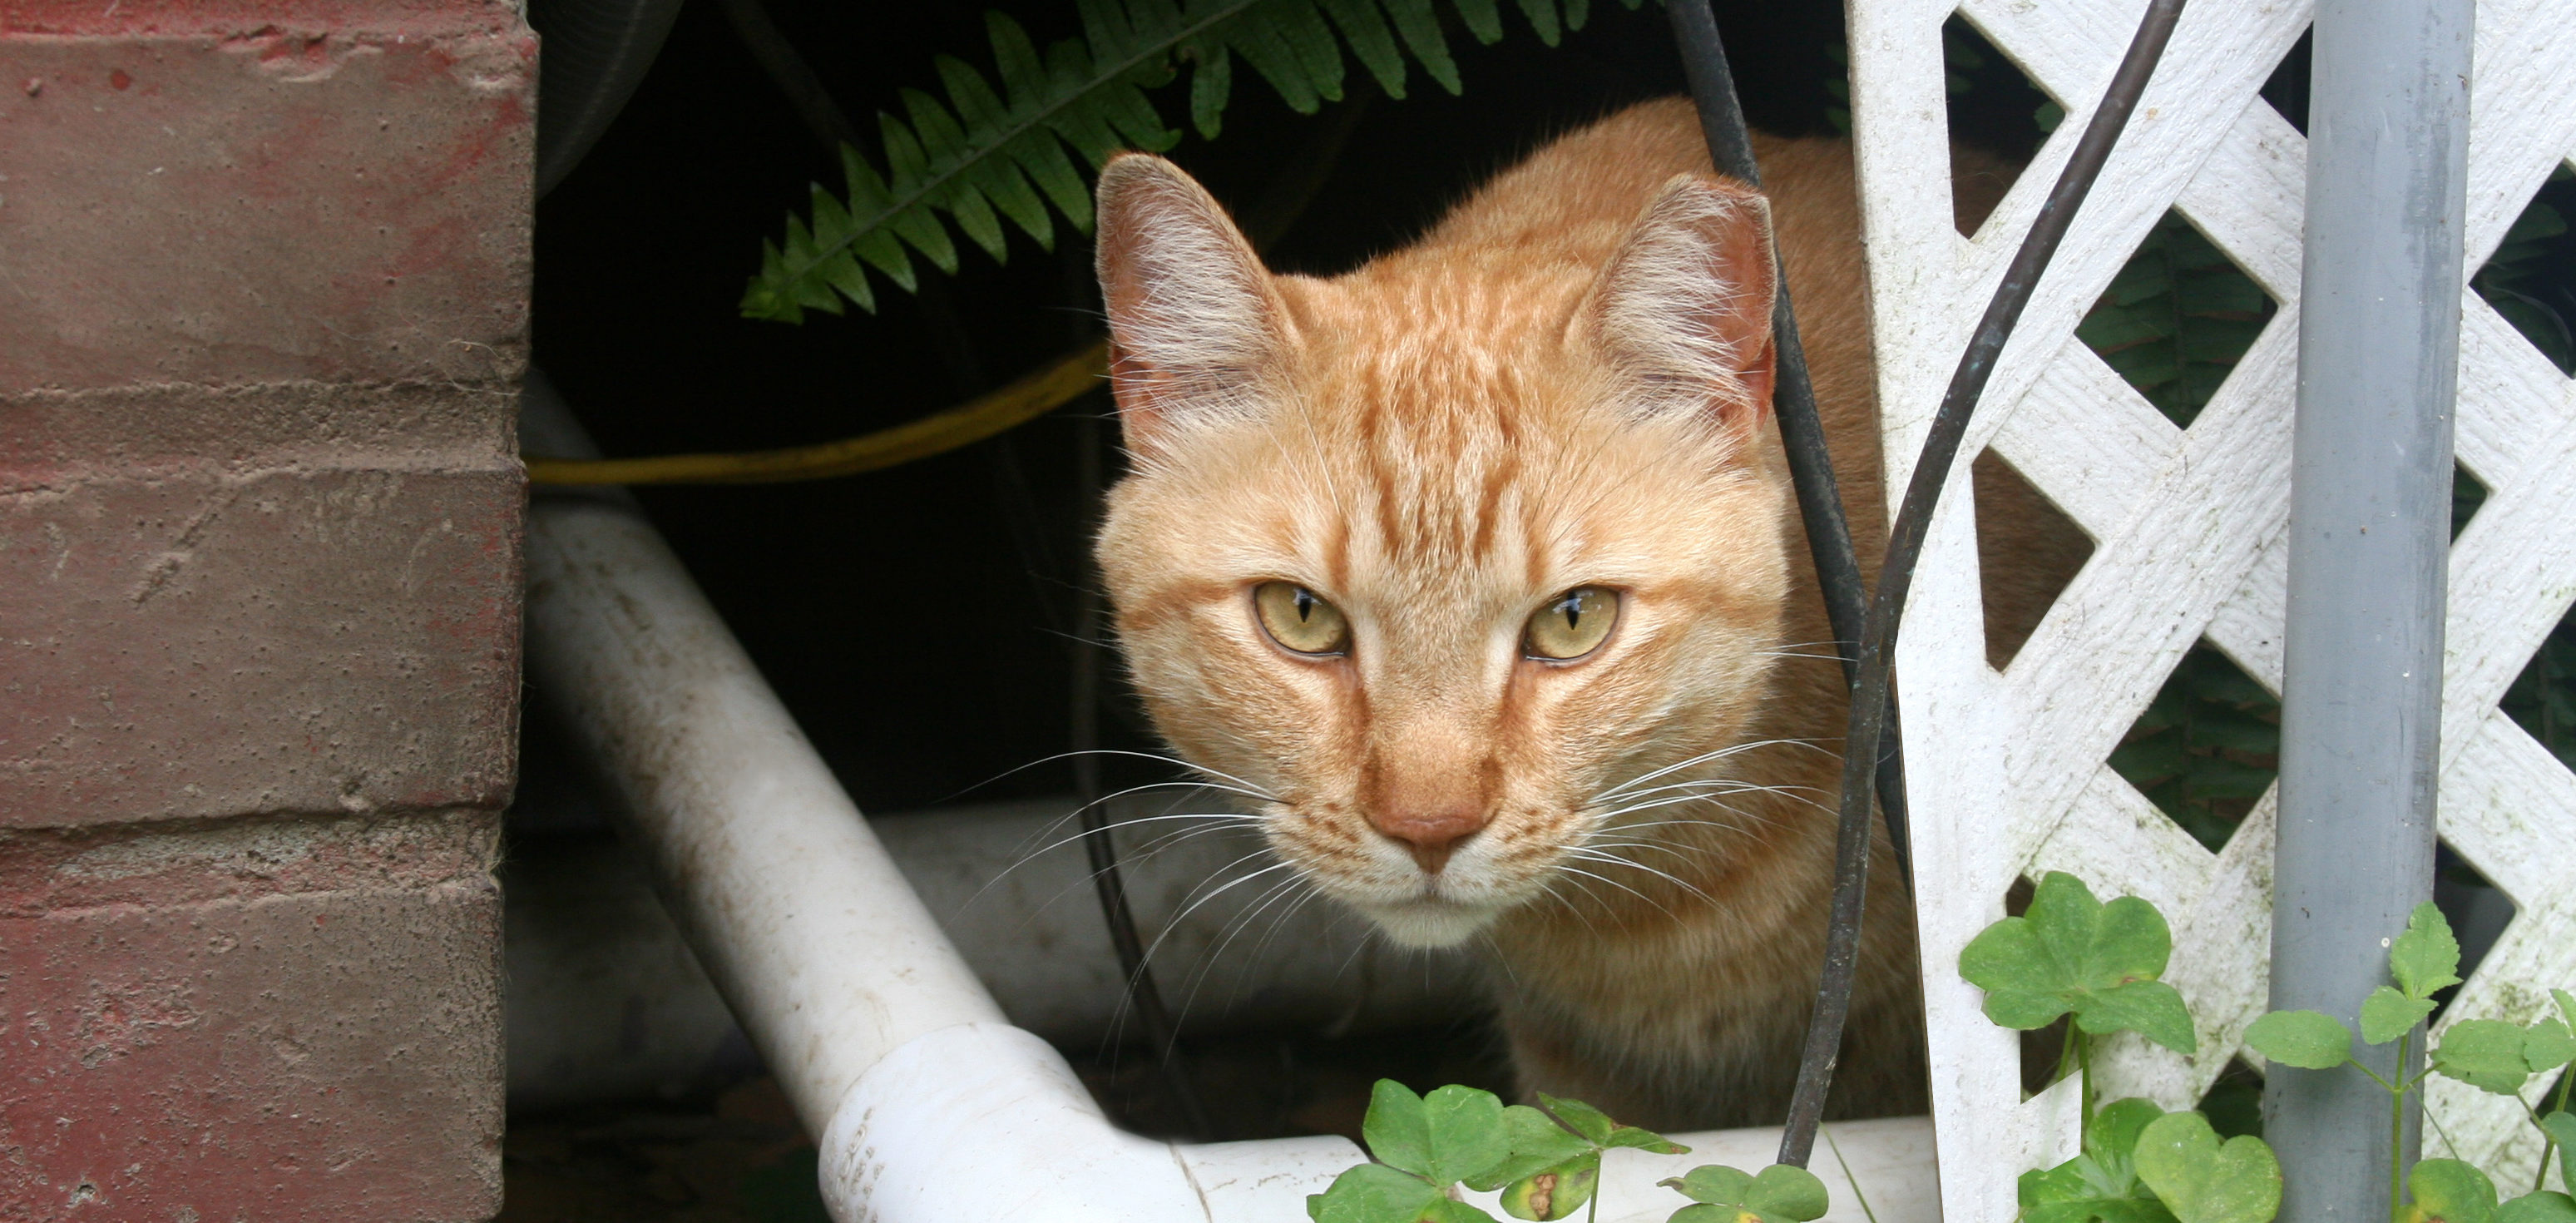 Working Cat with Ear Tip. This is an orange tabby looking at the camera from his hiding spot under a porch.